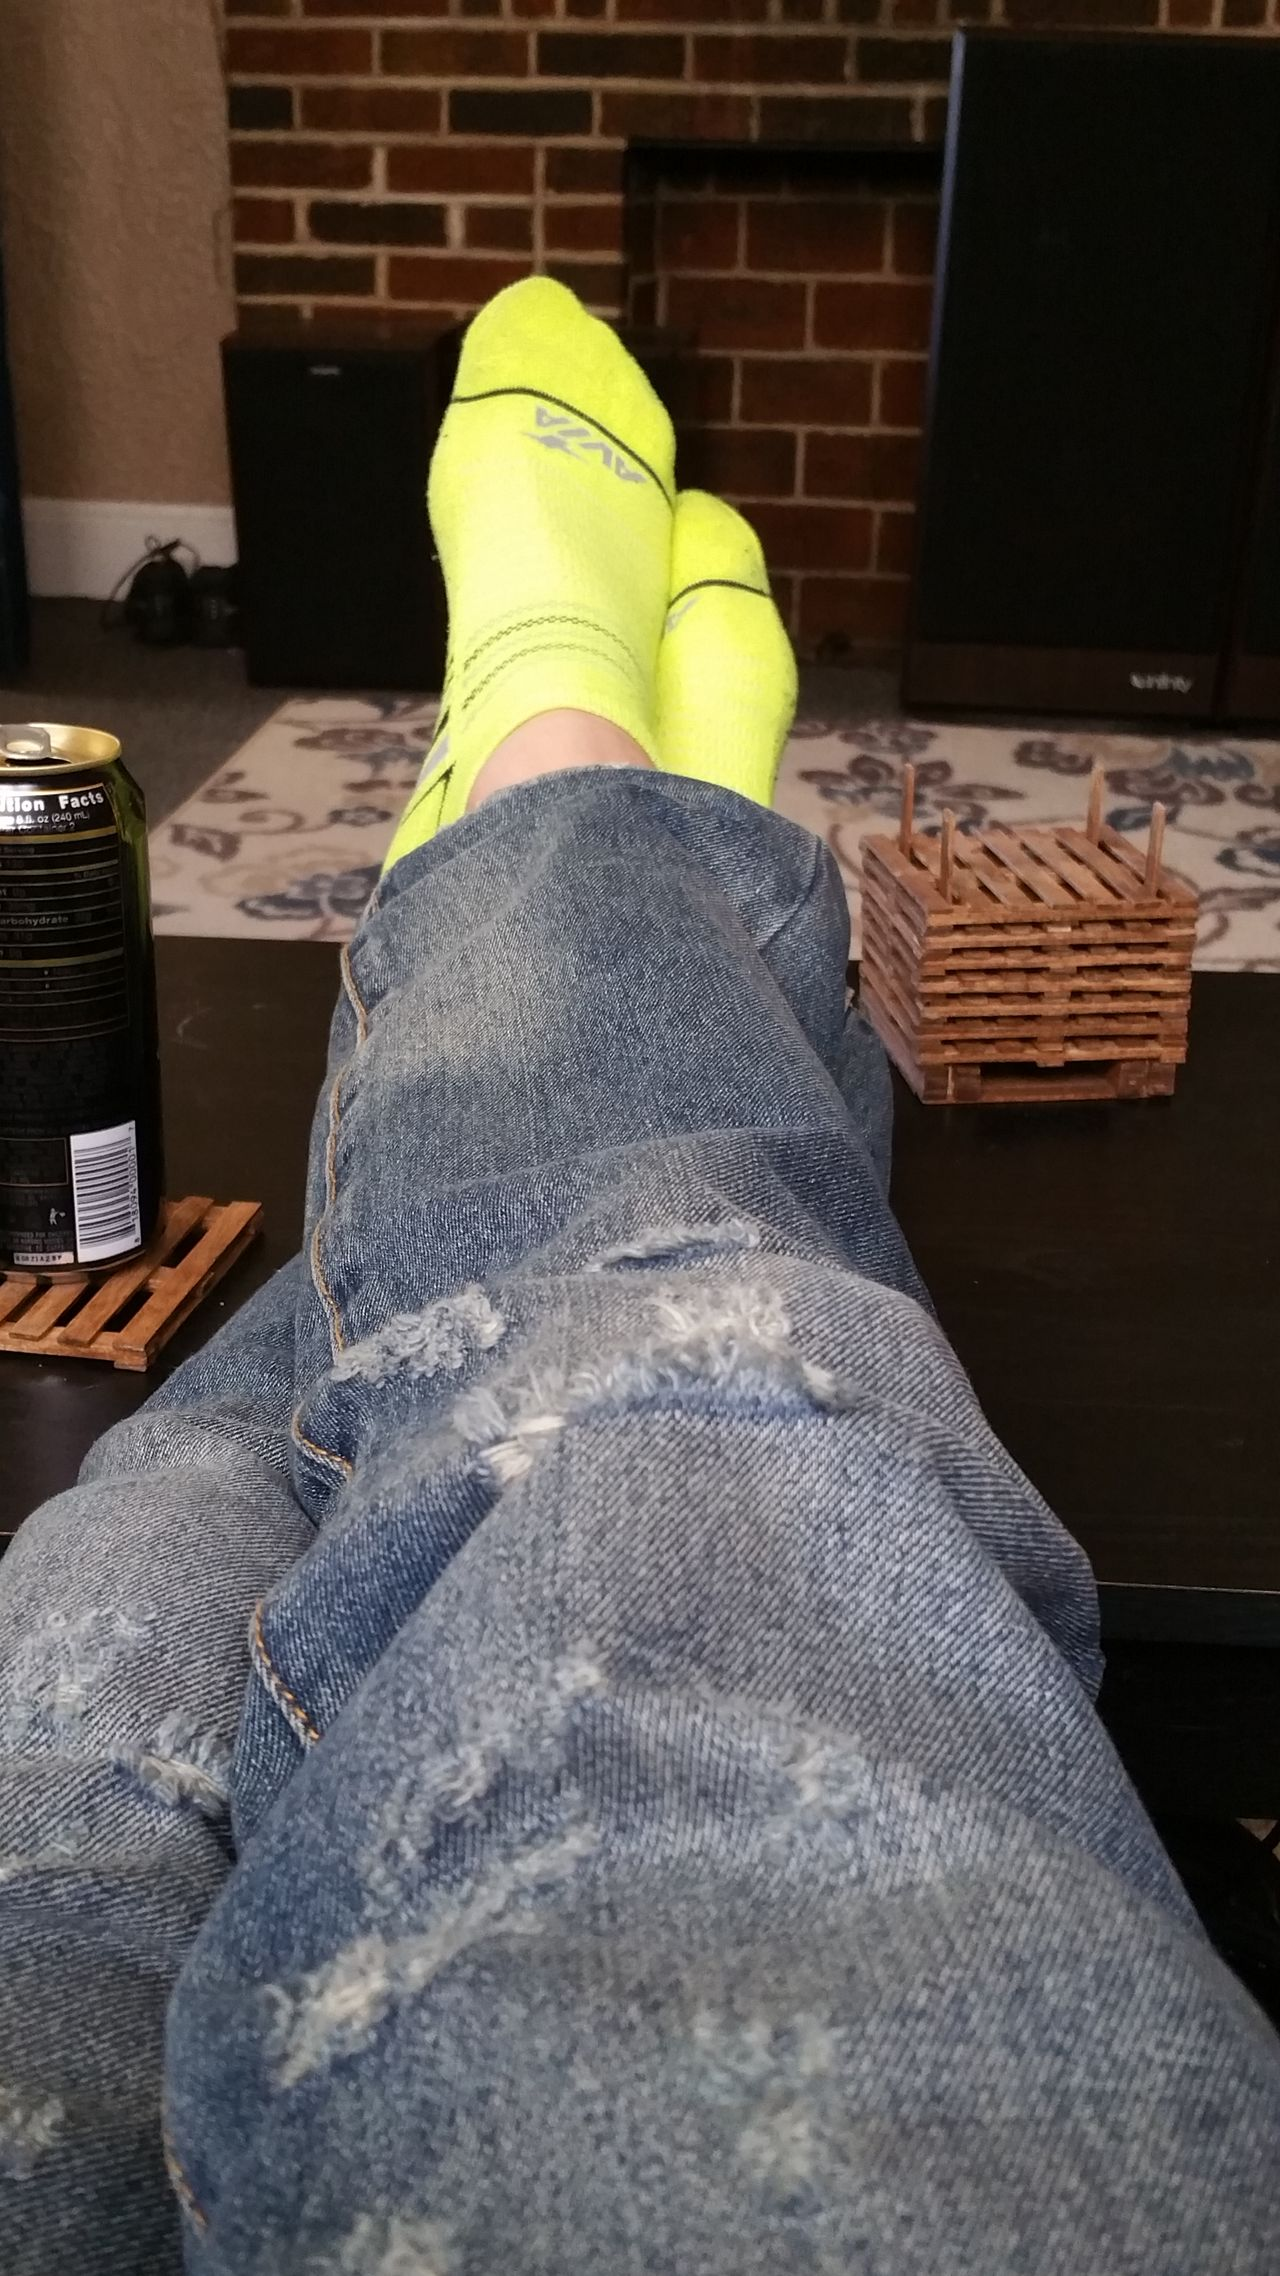 I should totally be sleeping right now... Human Leg Human Body Part Men Low Section Personal Perspective Socks Socks Of The Day Neon Neon Yellow Colorful Socks Me ThatsMe Relaxing